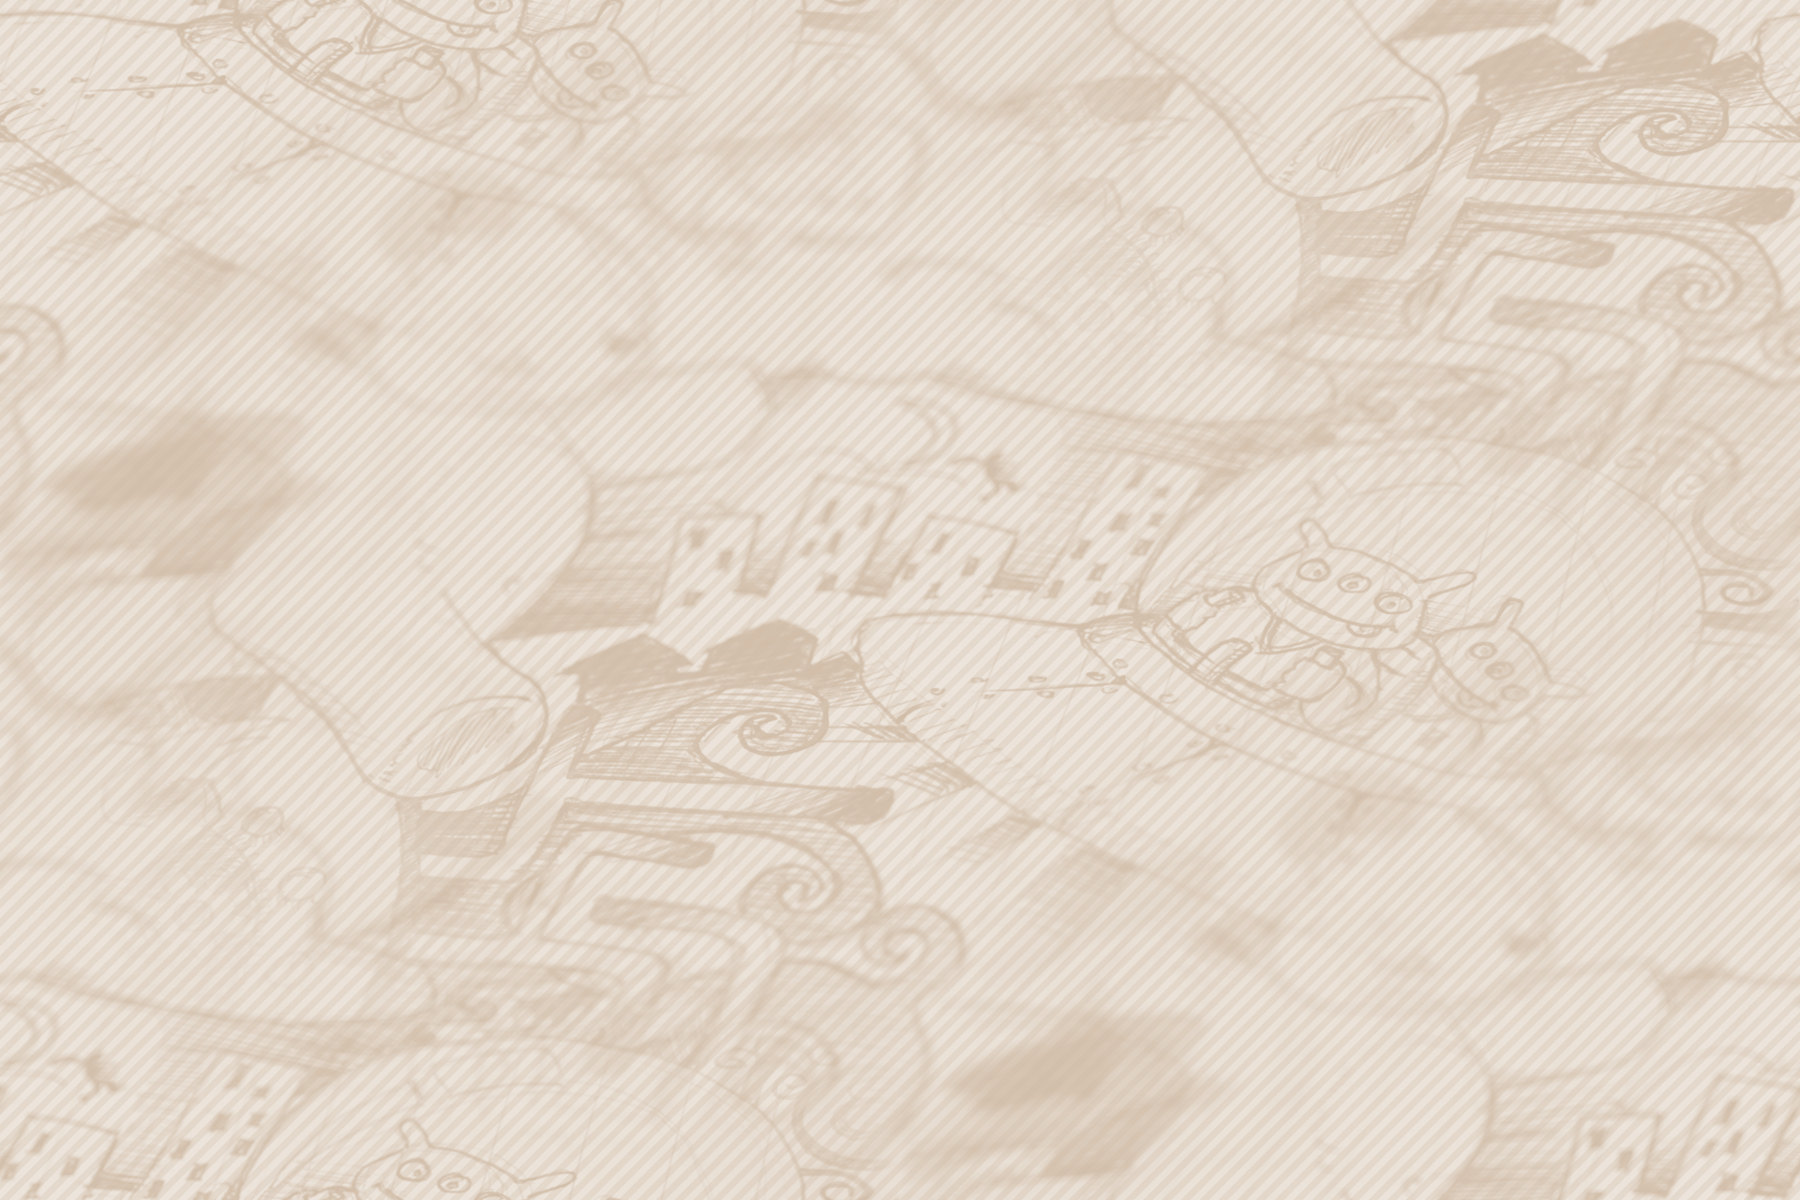 bg_content_scetches_small_lightbrown